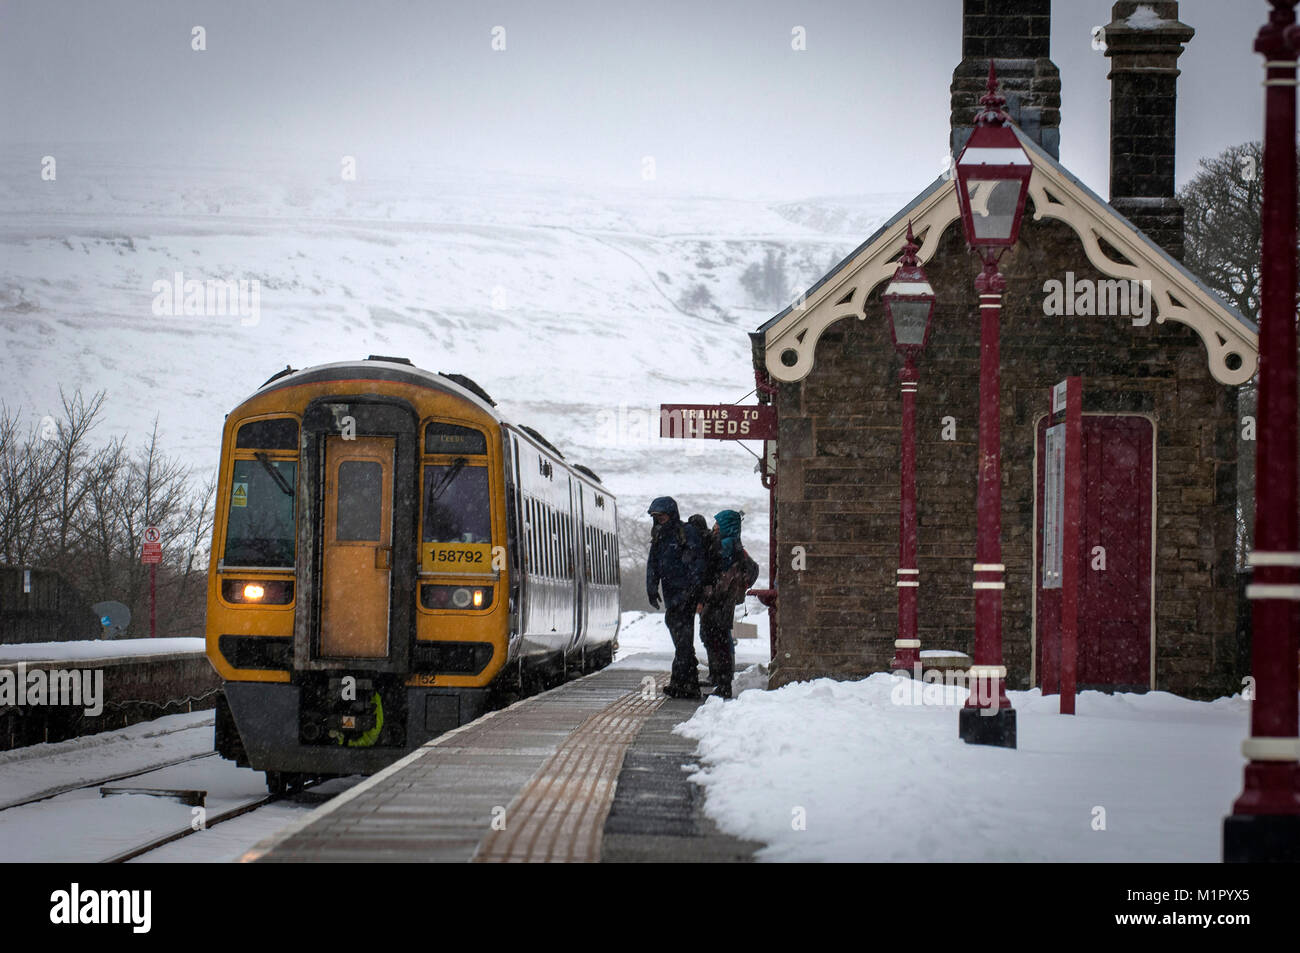 Passengers wait at Gardale Train Station in the Yorkshire Dales, UK. - Stock Image